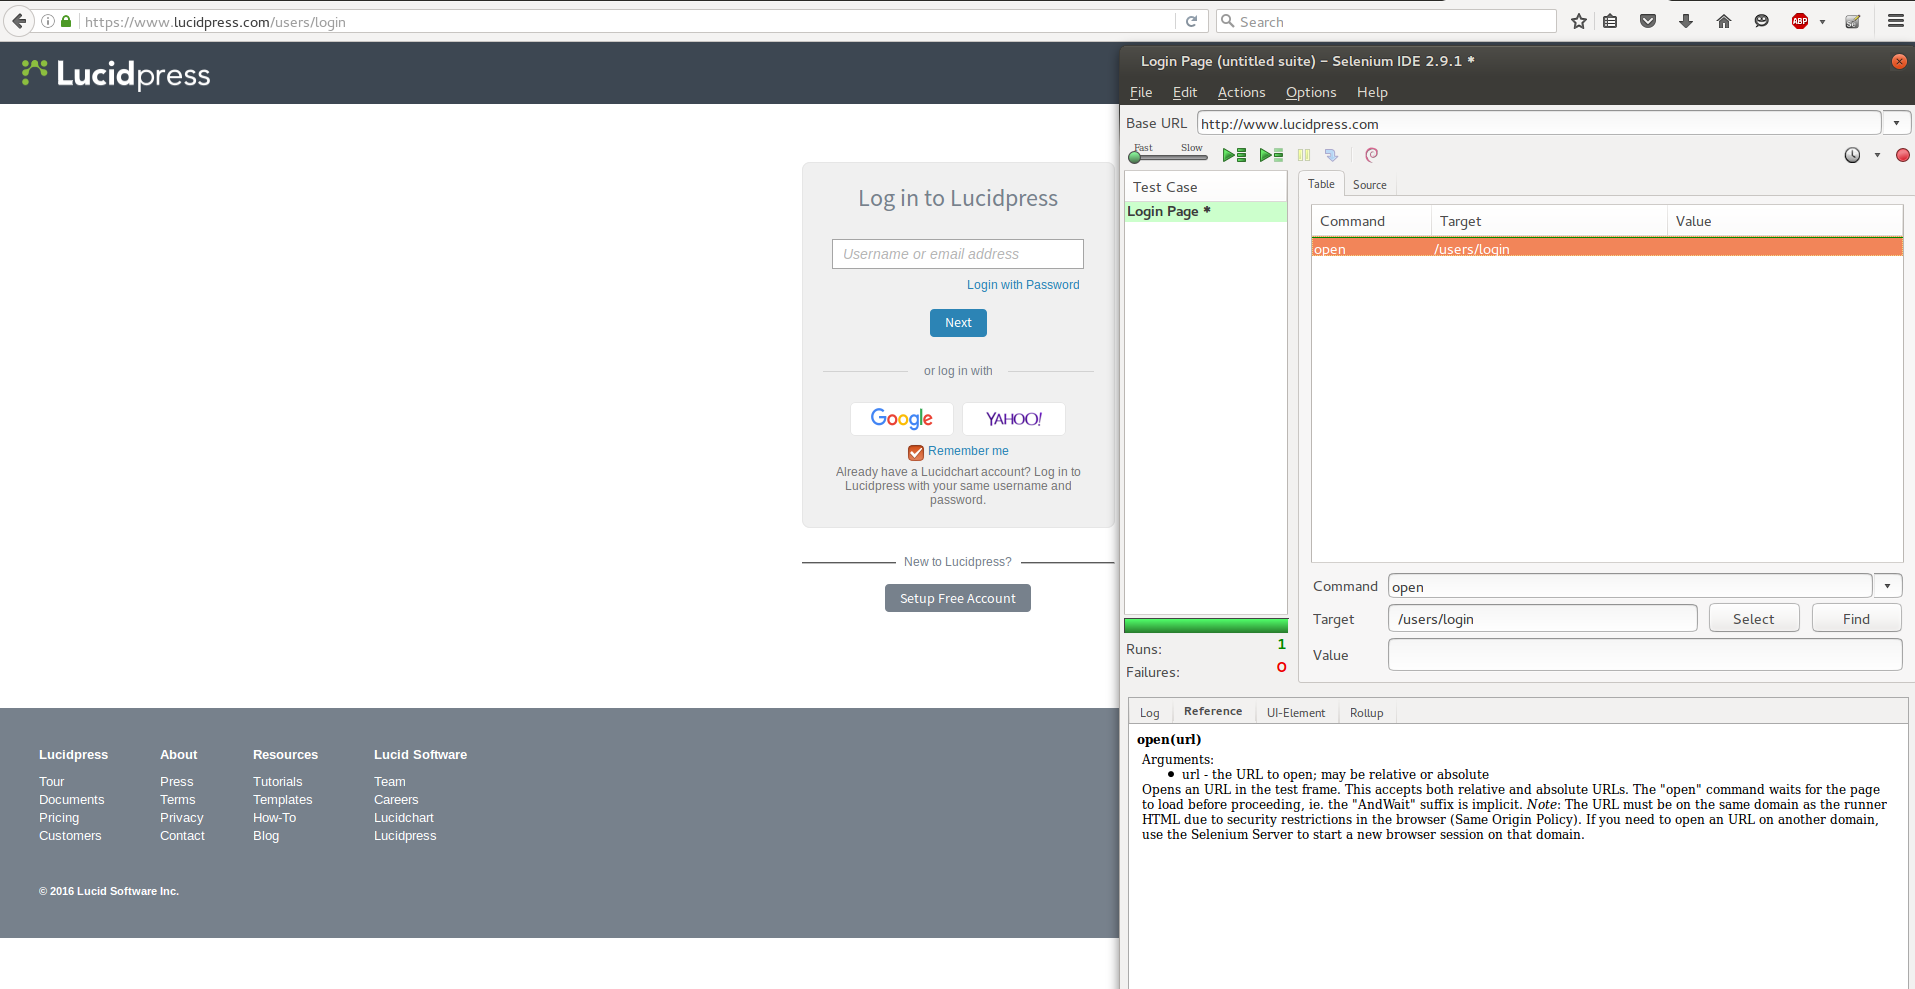 Screenshot of Selenium IDE add on